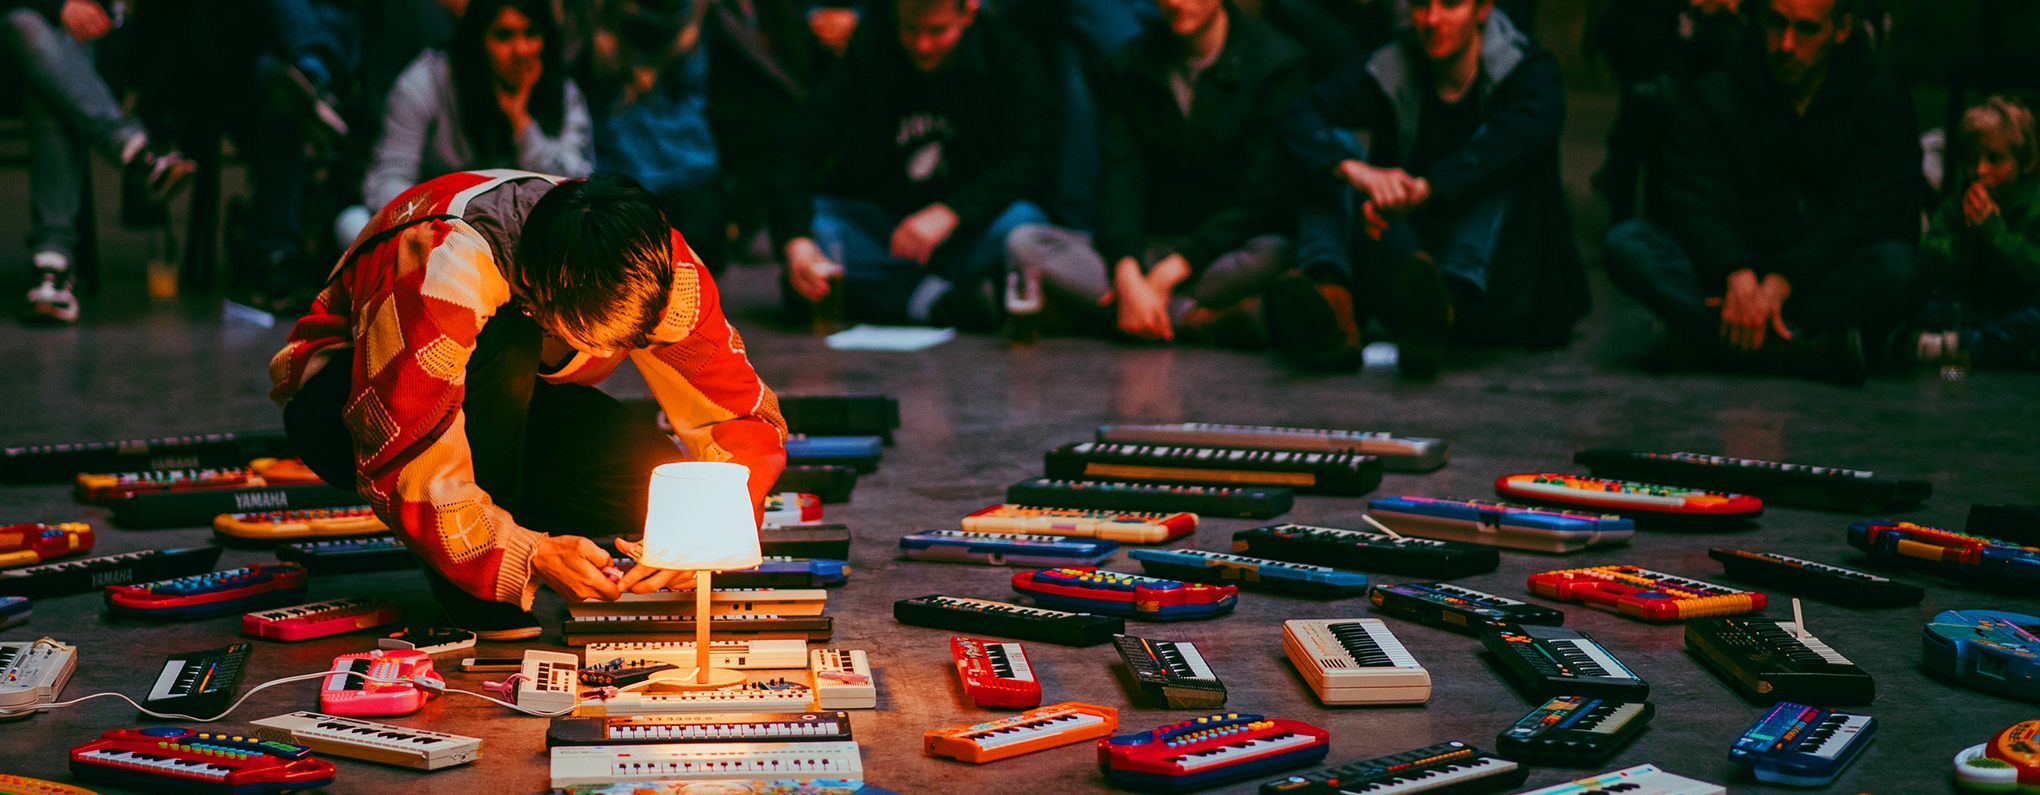 Artist crouching on floor surrounded by dozens of mini keyboards.